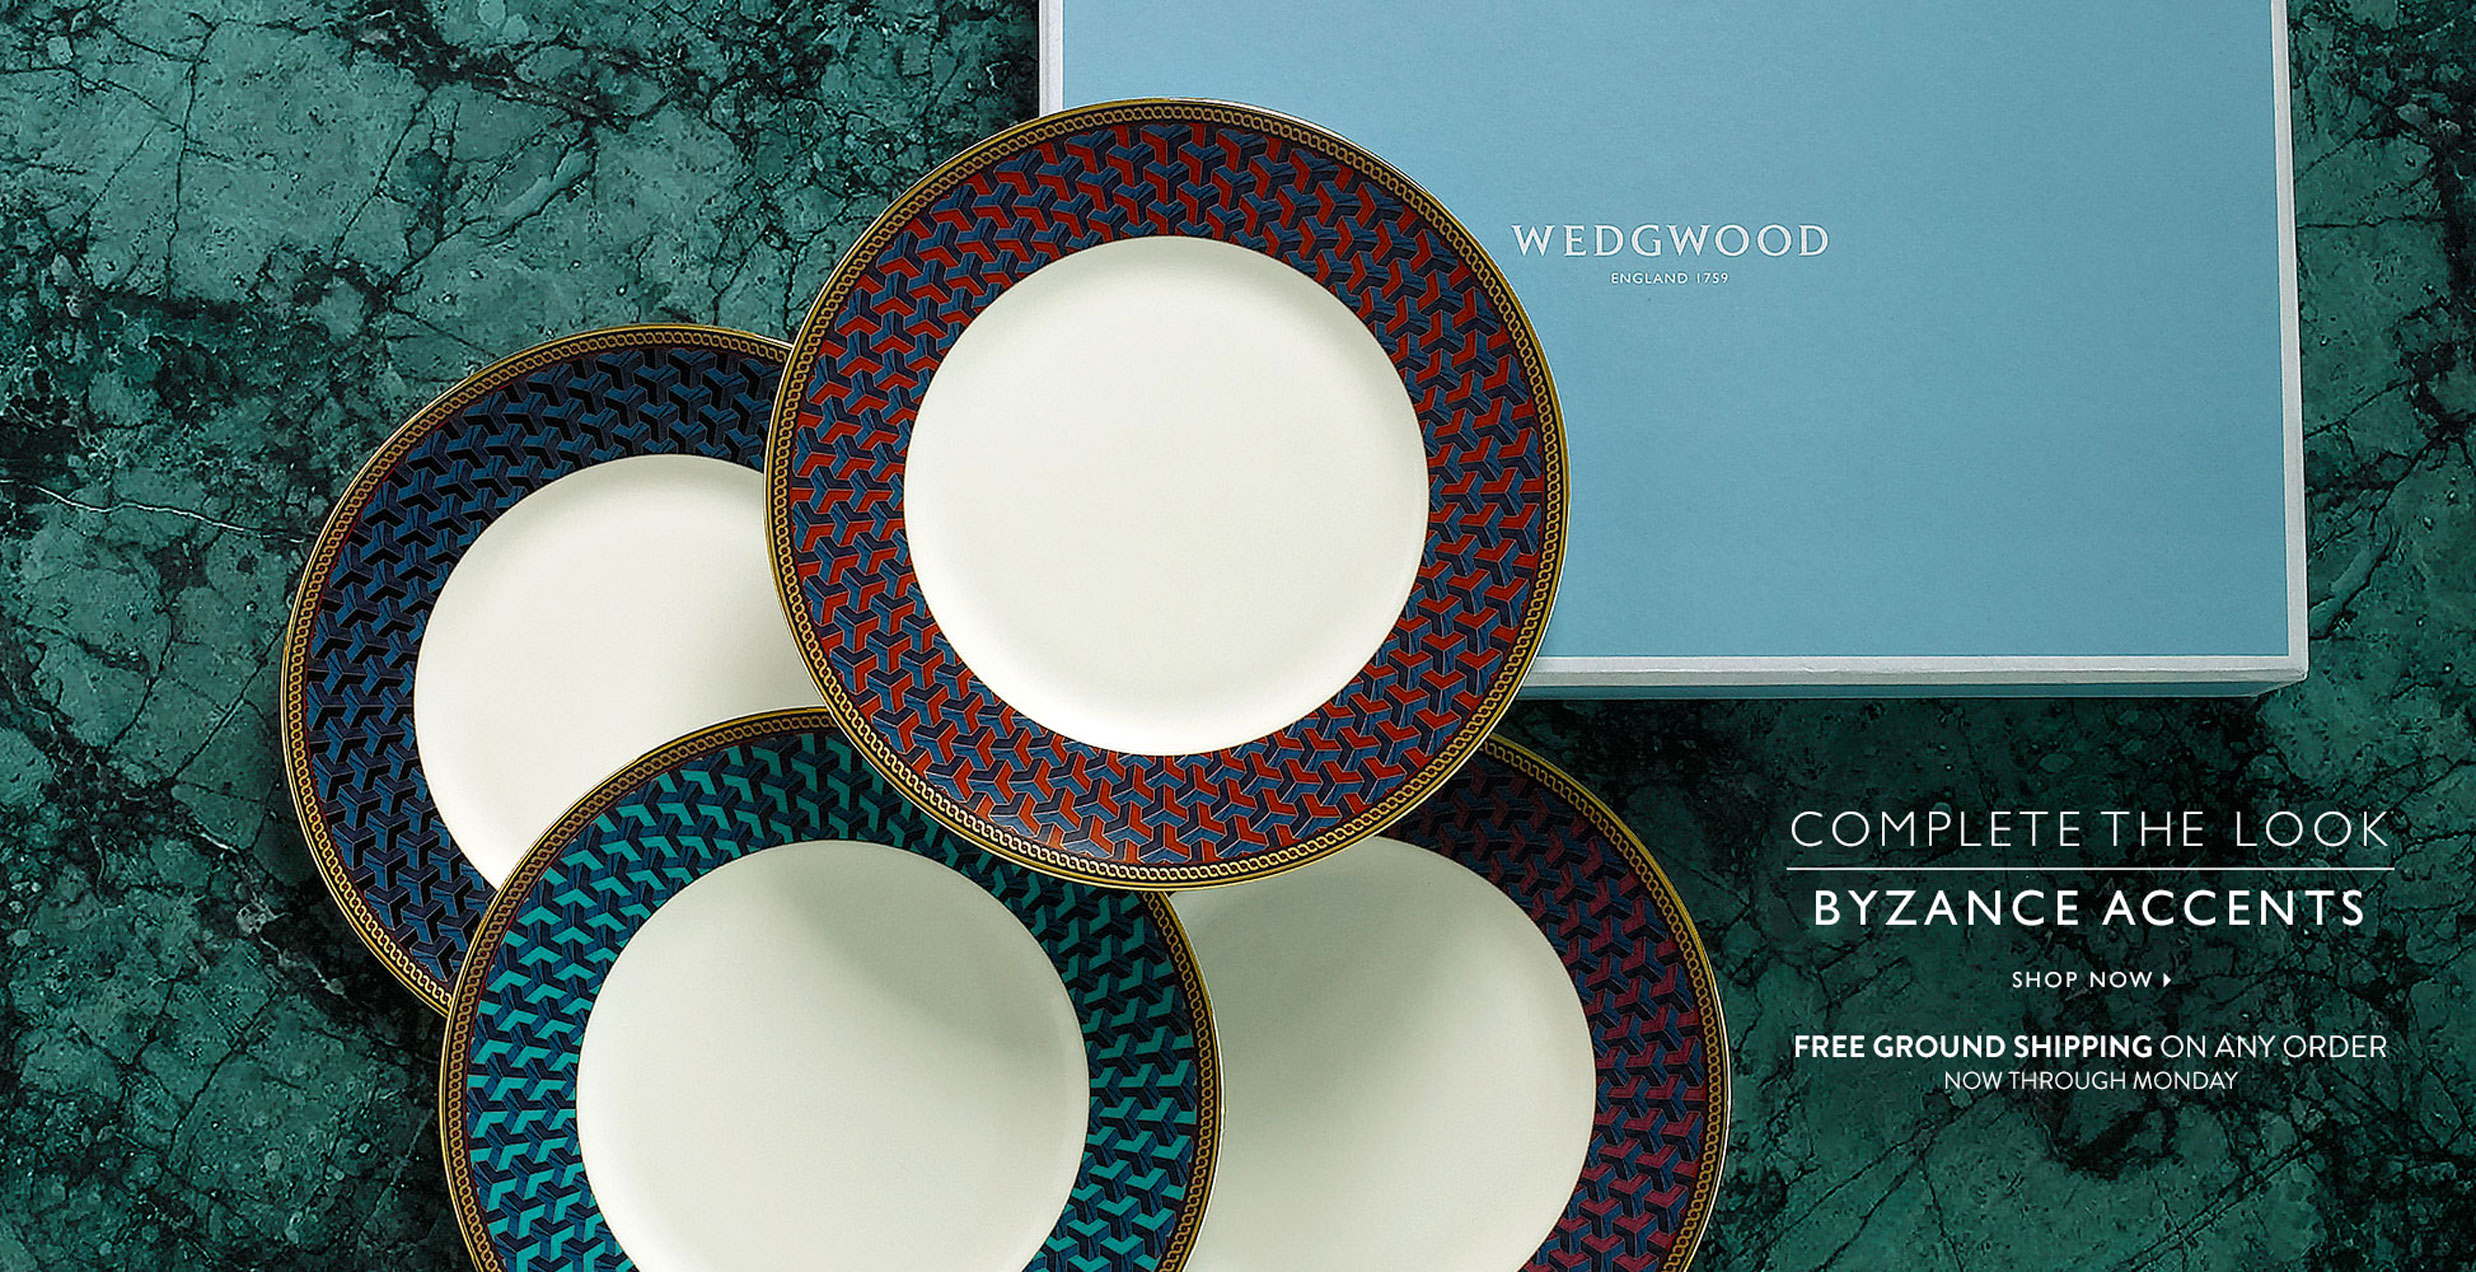 Shop for Wedgwood Dinnerware and Home Decor on Sale Now